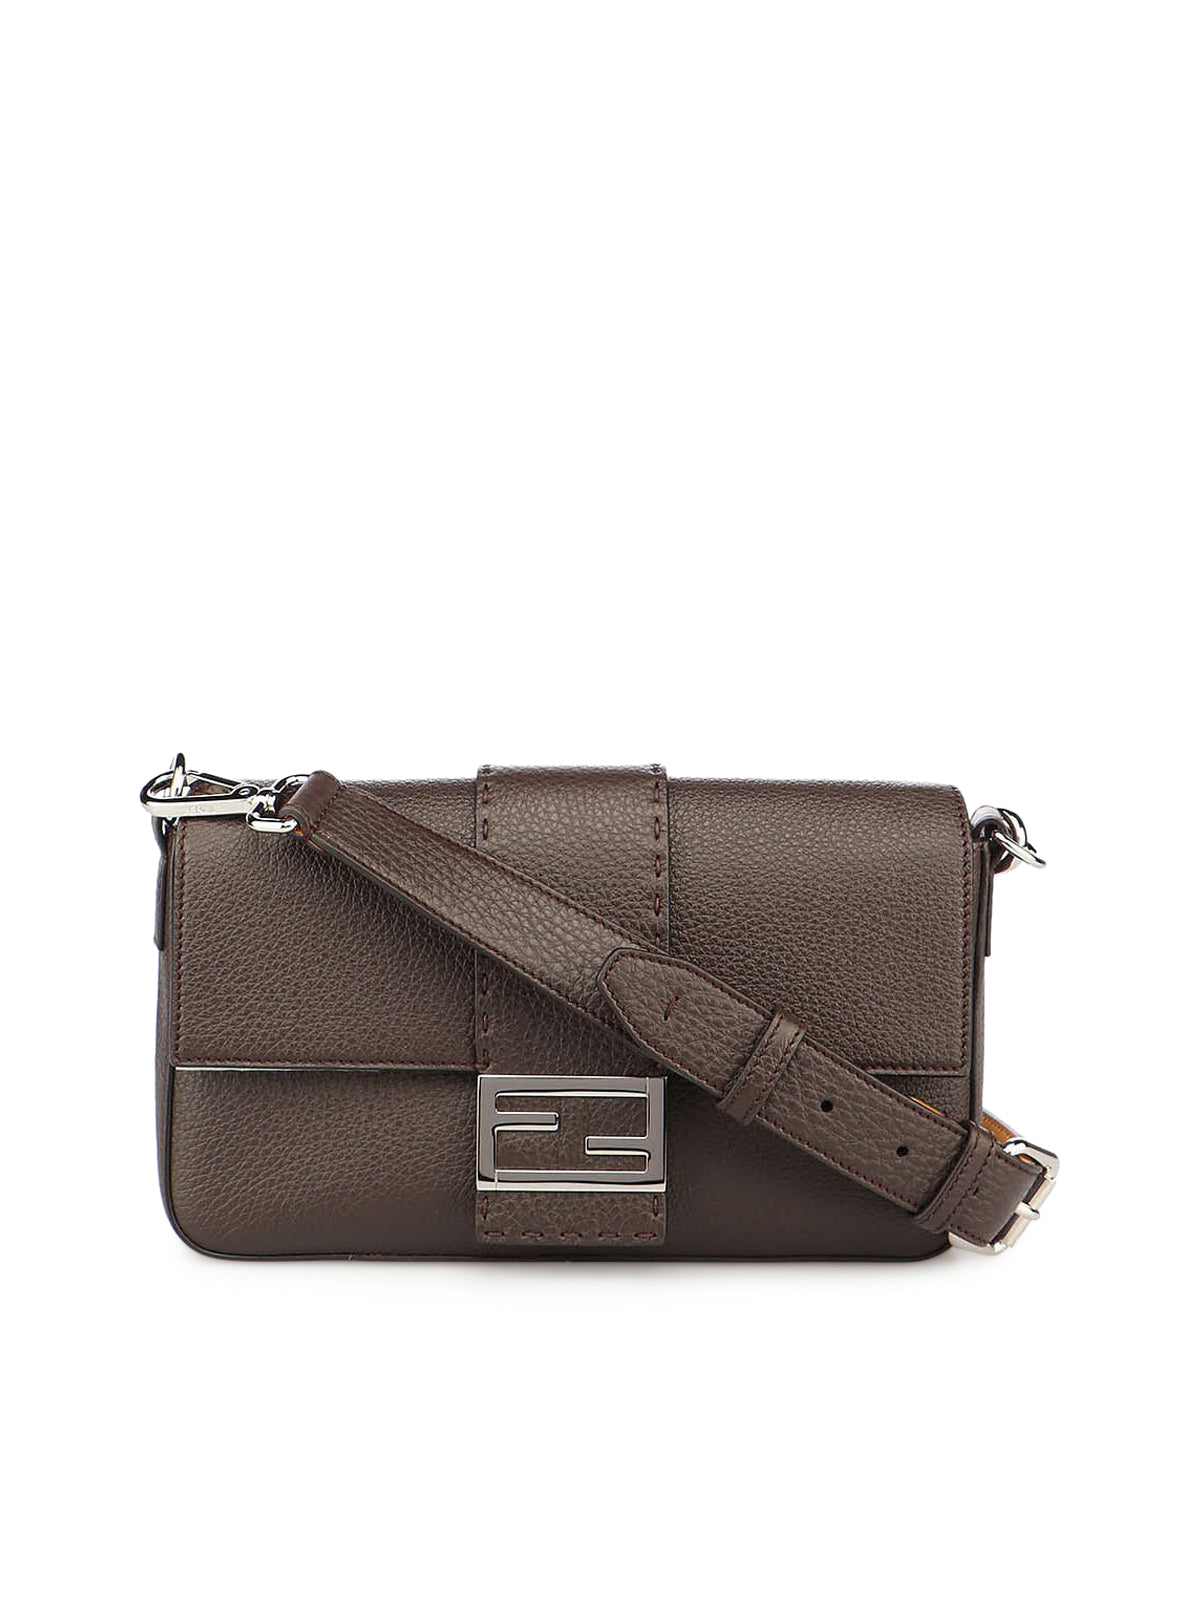 Fendi Baguette Regular